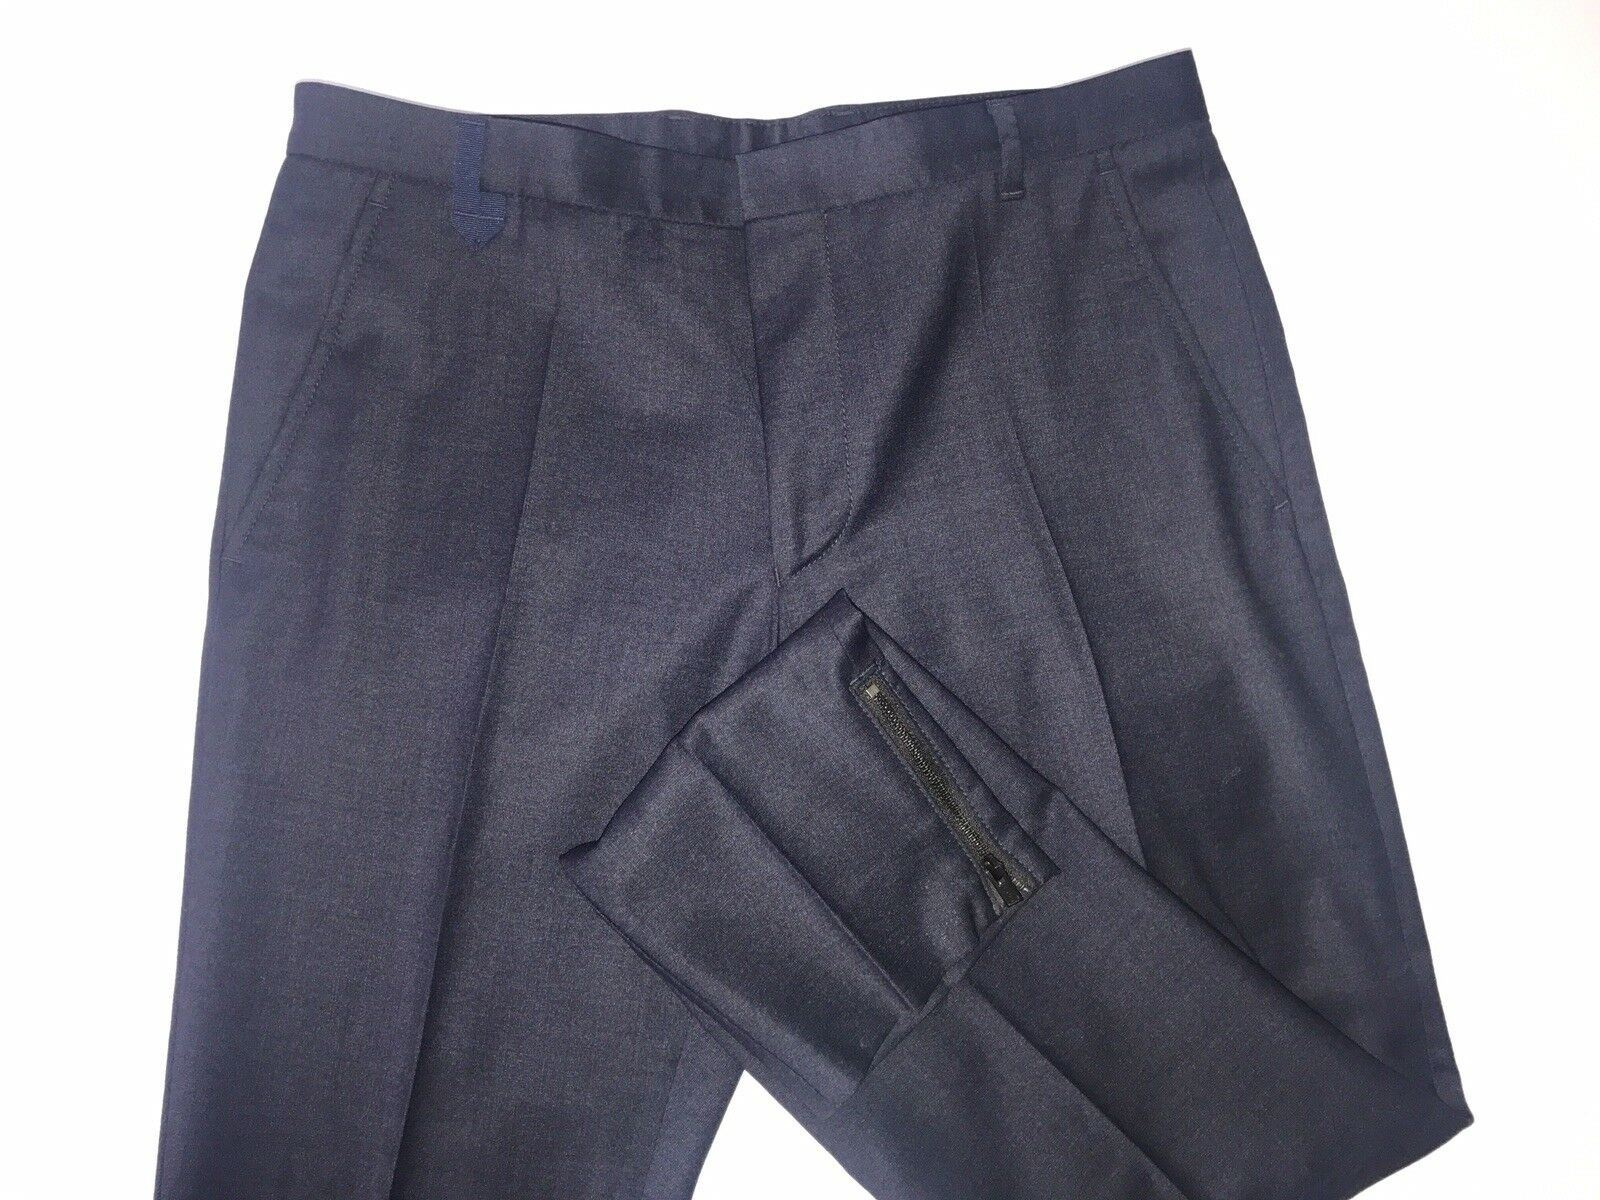 NWT $175 Boss Hugo Boss Hiw Mens Wool  Dark Blue Dress Pants Size 28R US